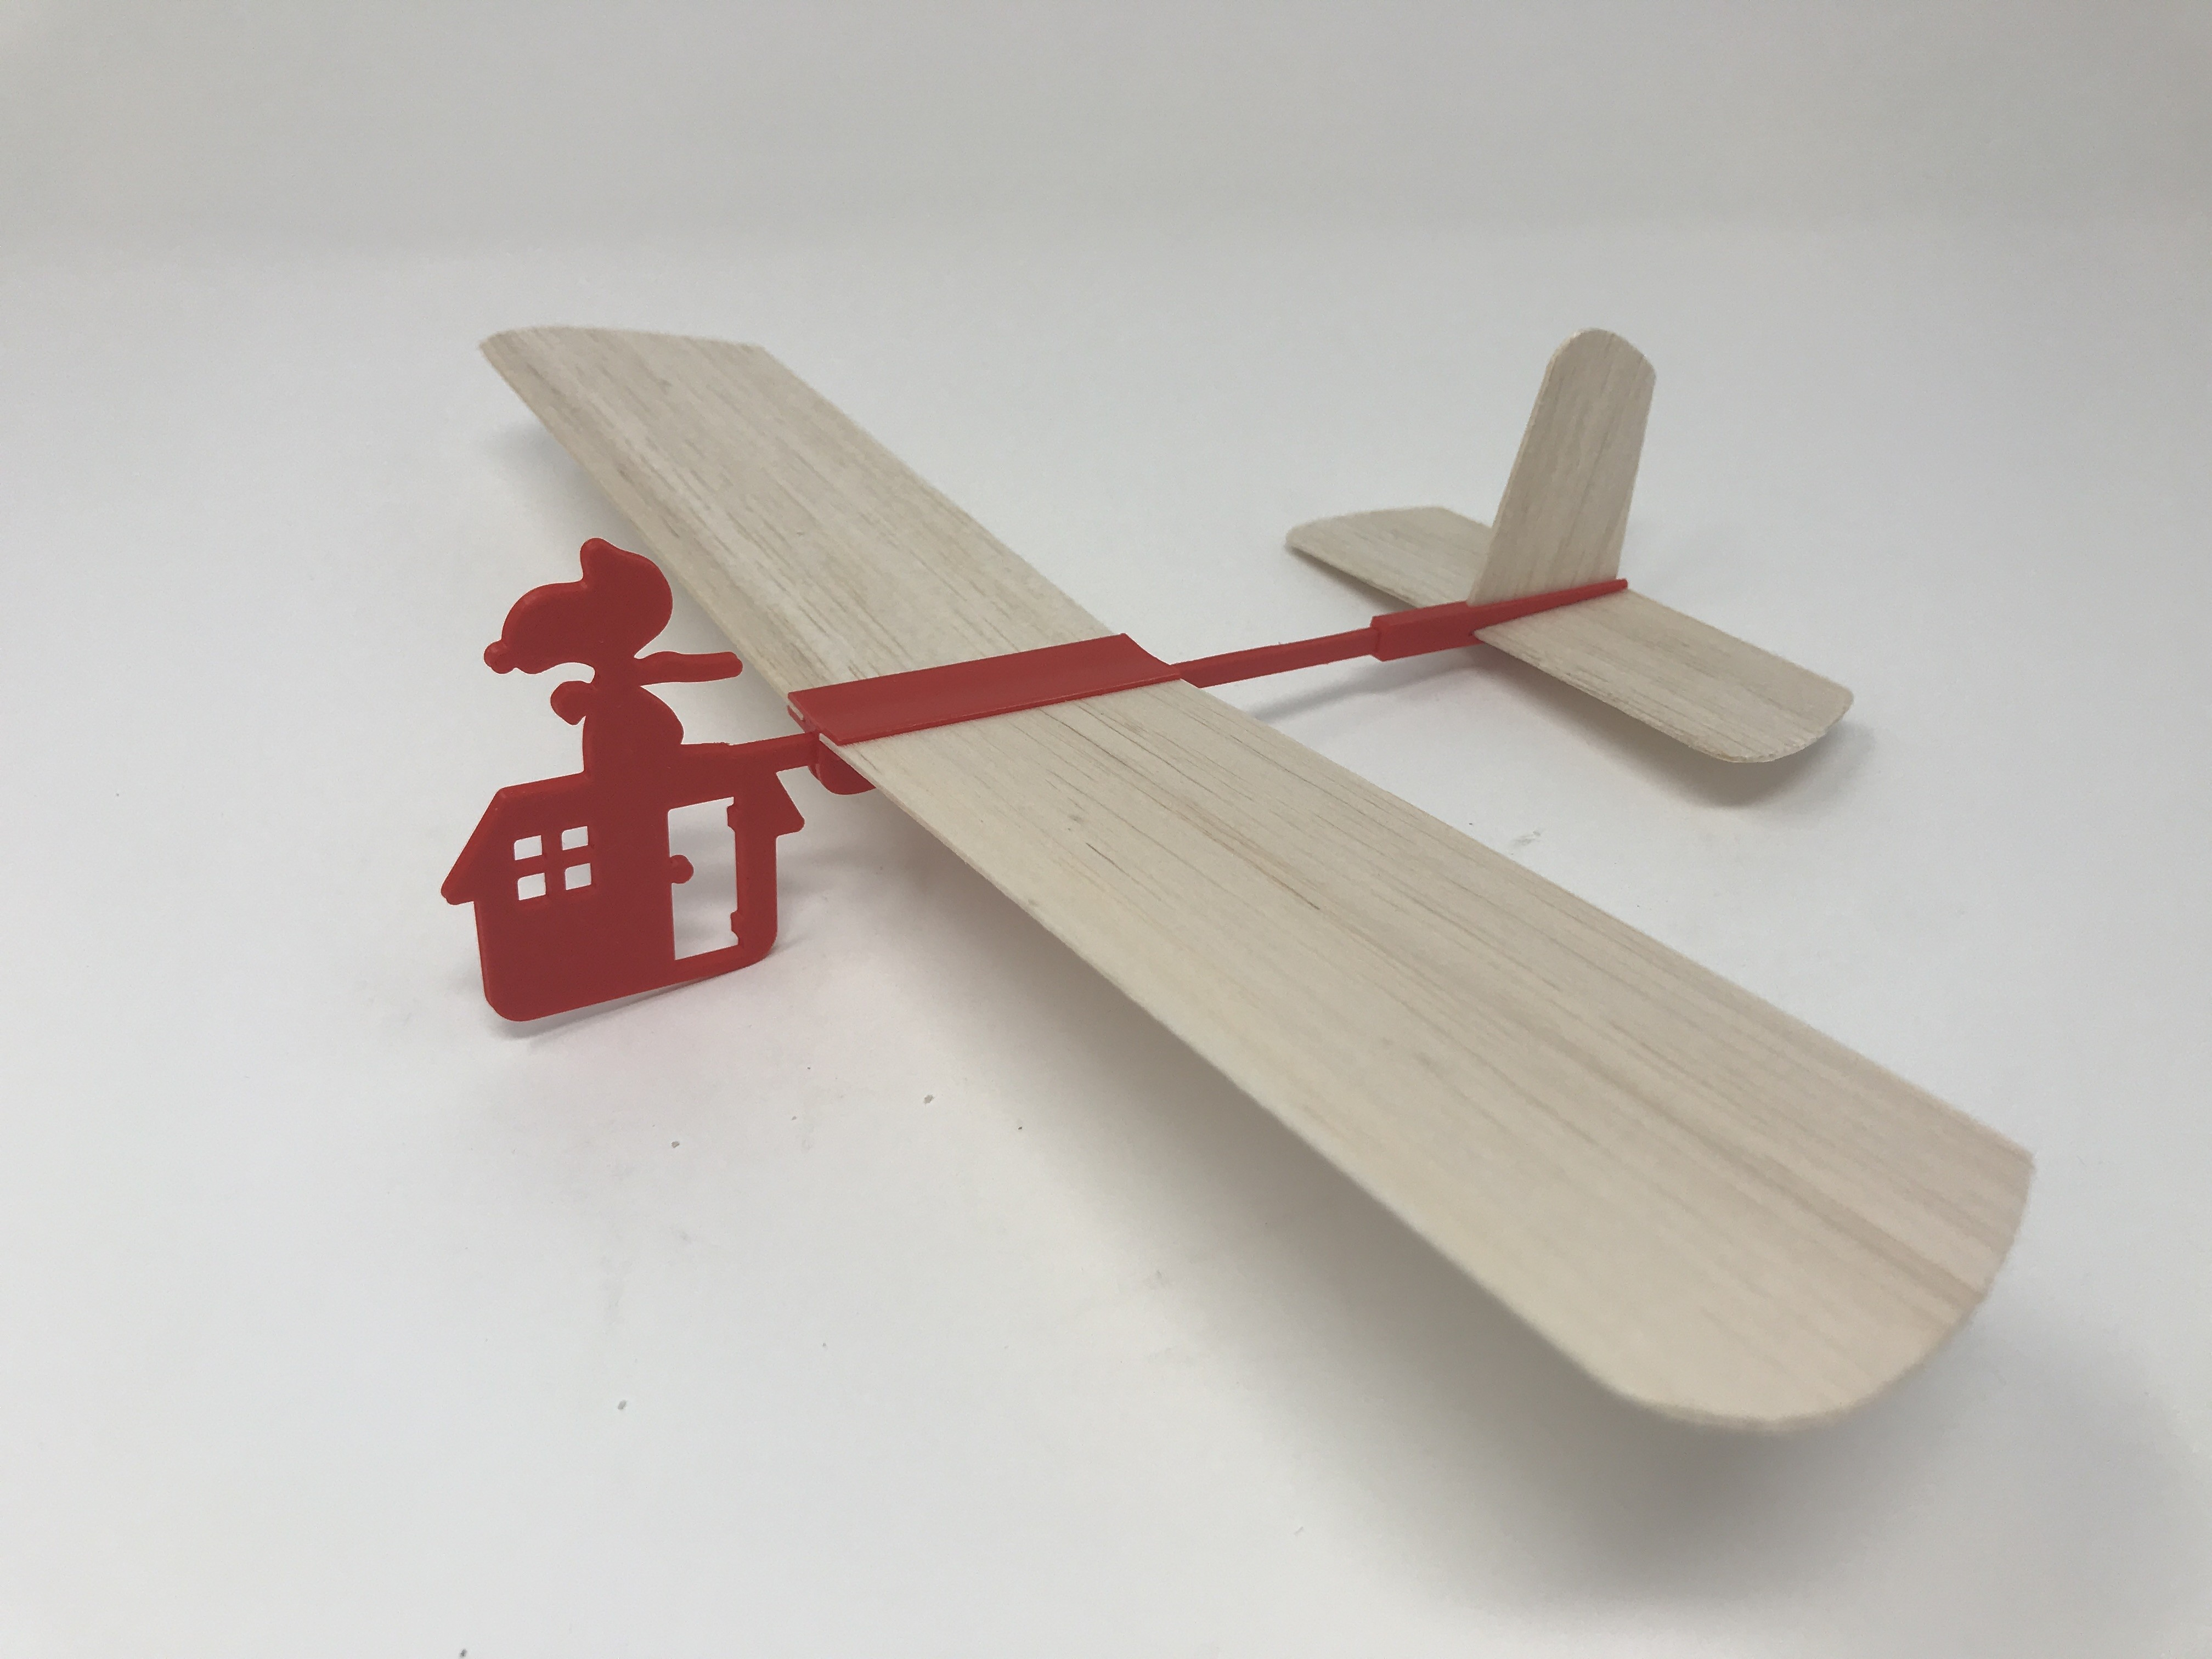 IMG_1734.jpg Download free STL file Red Baron Hand Launched Glider • 3D printer template, gzumwalt